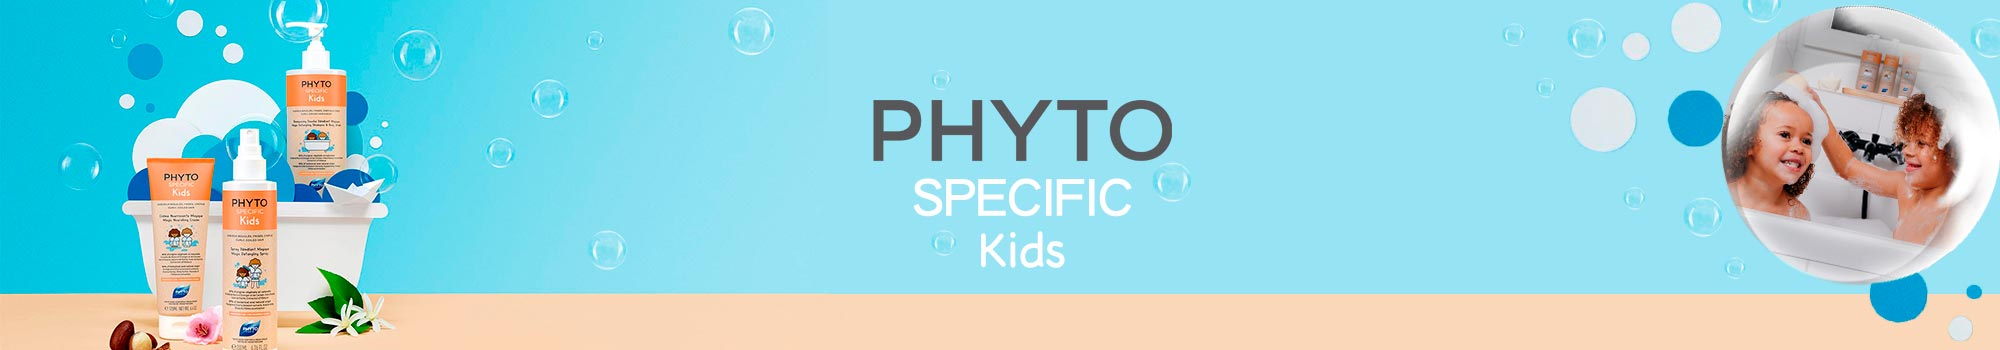 Phyto Specific Kids